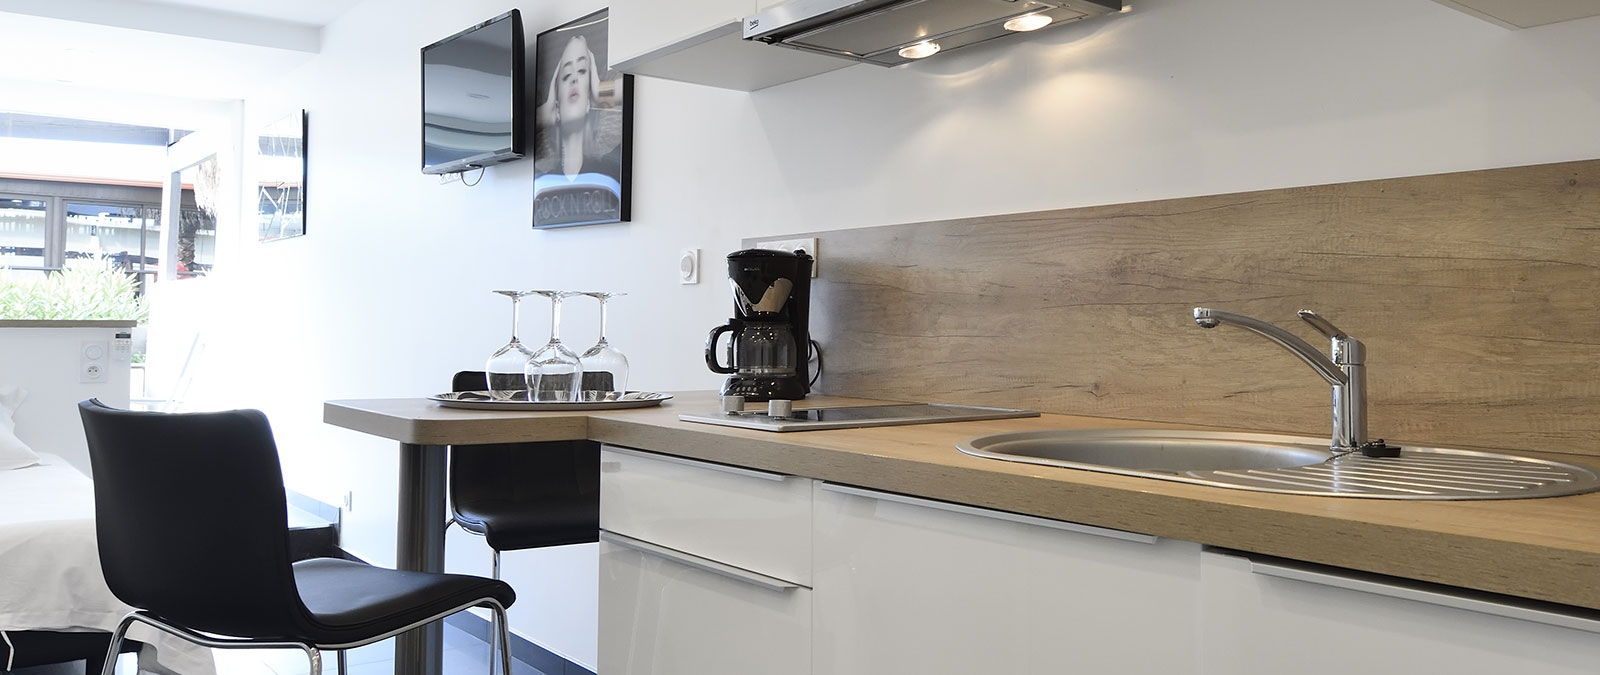 Equipped kitchen Poppy studio flat libertine stay